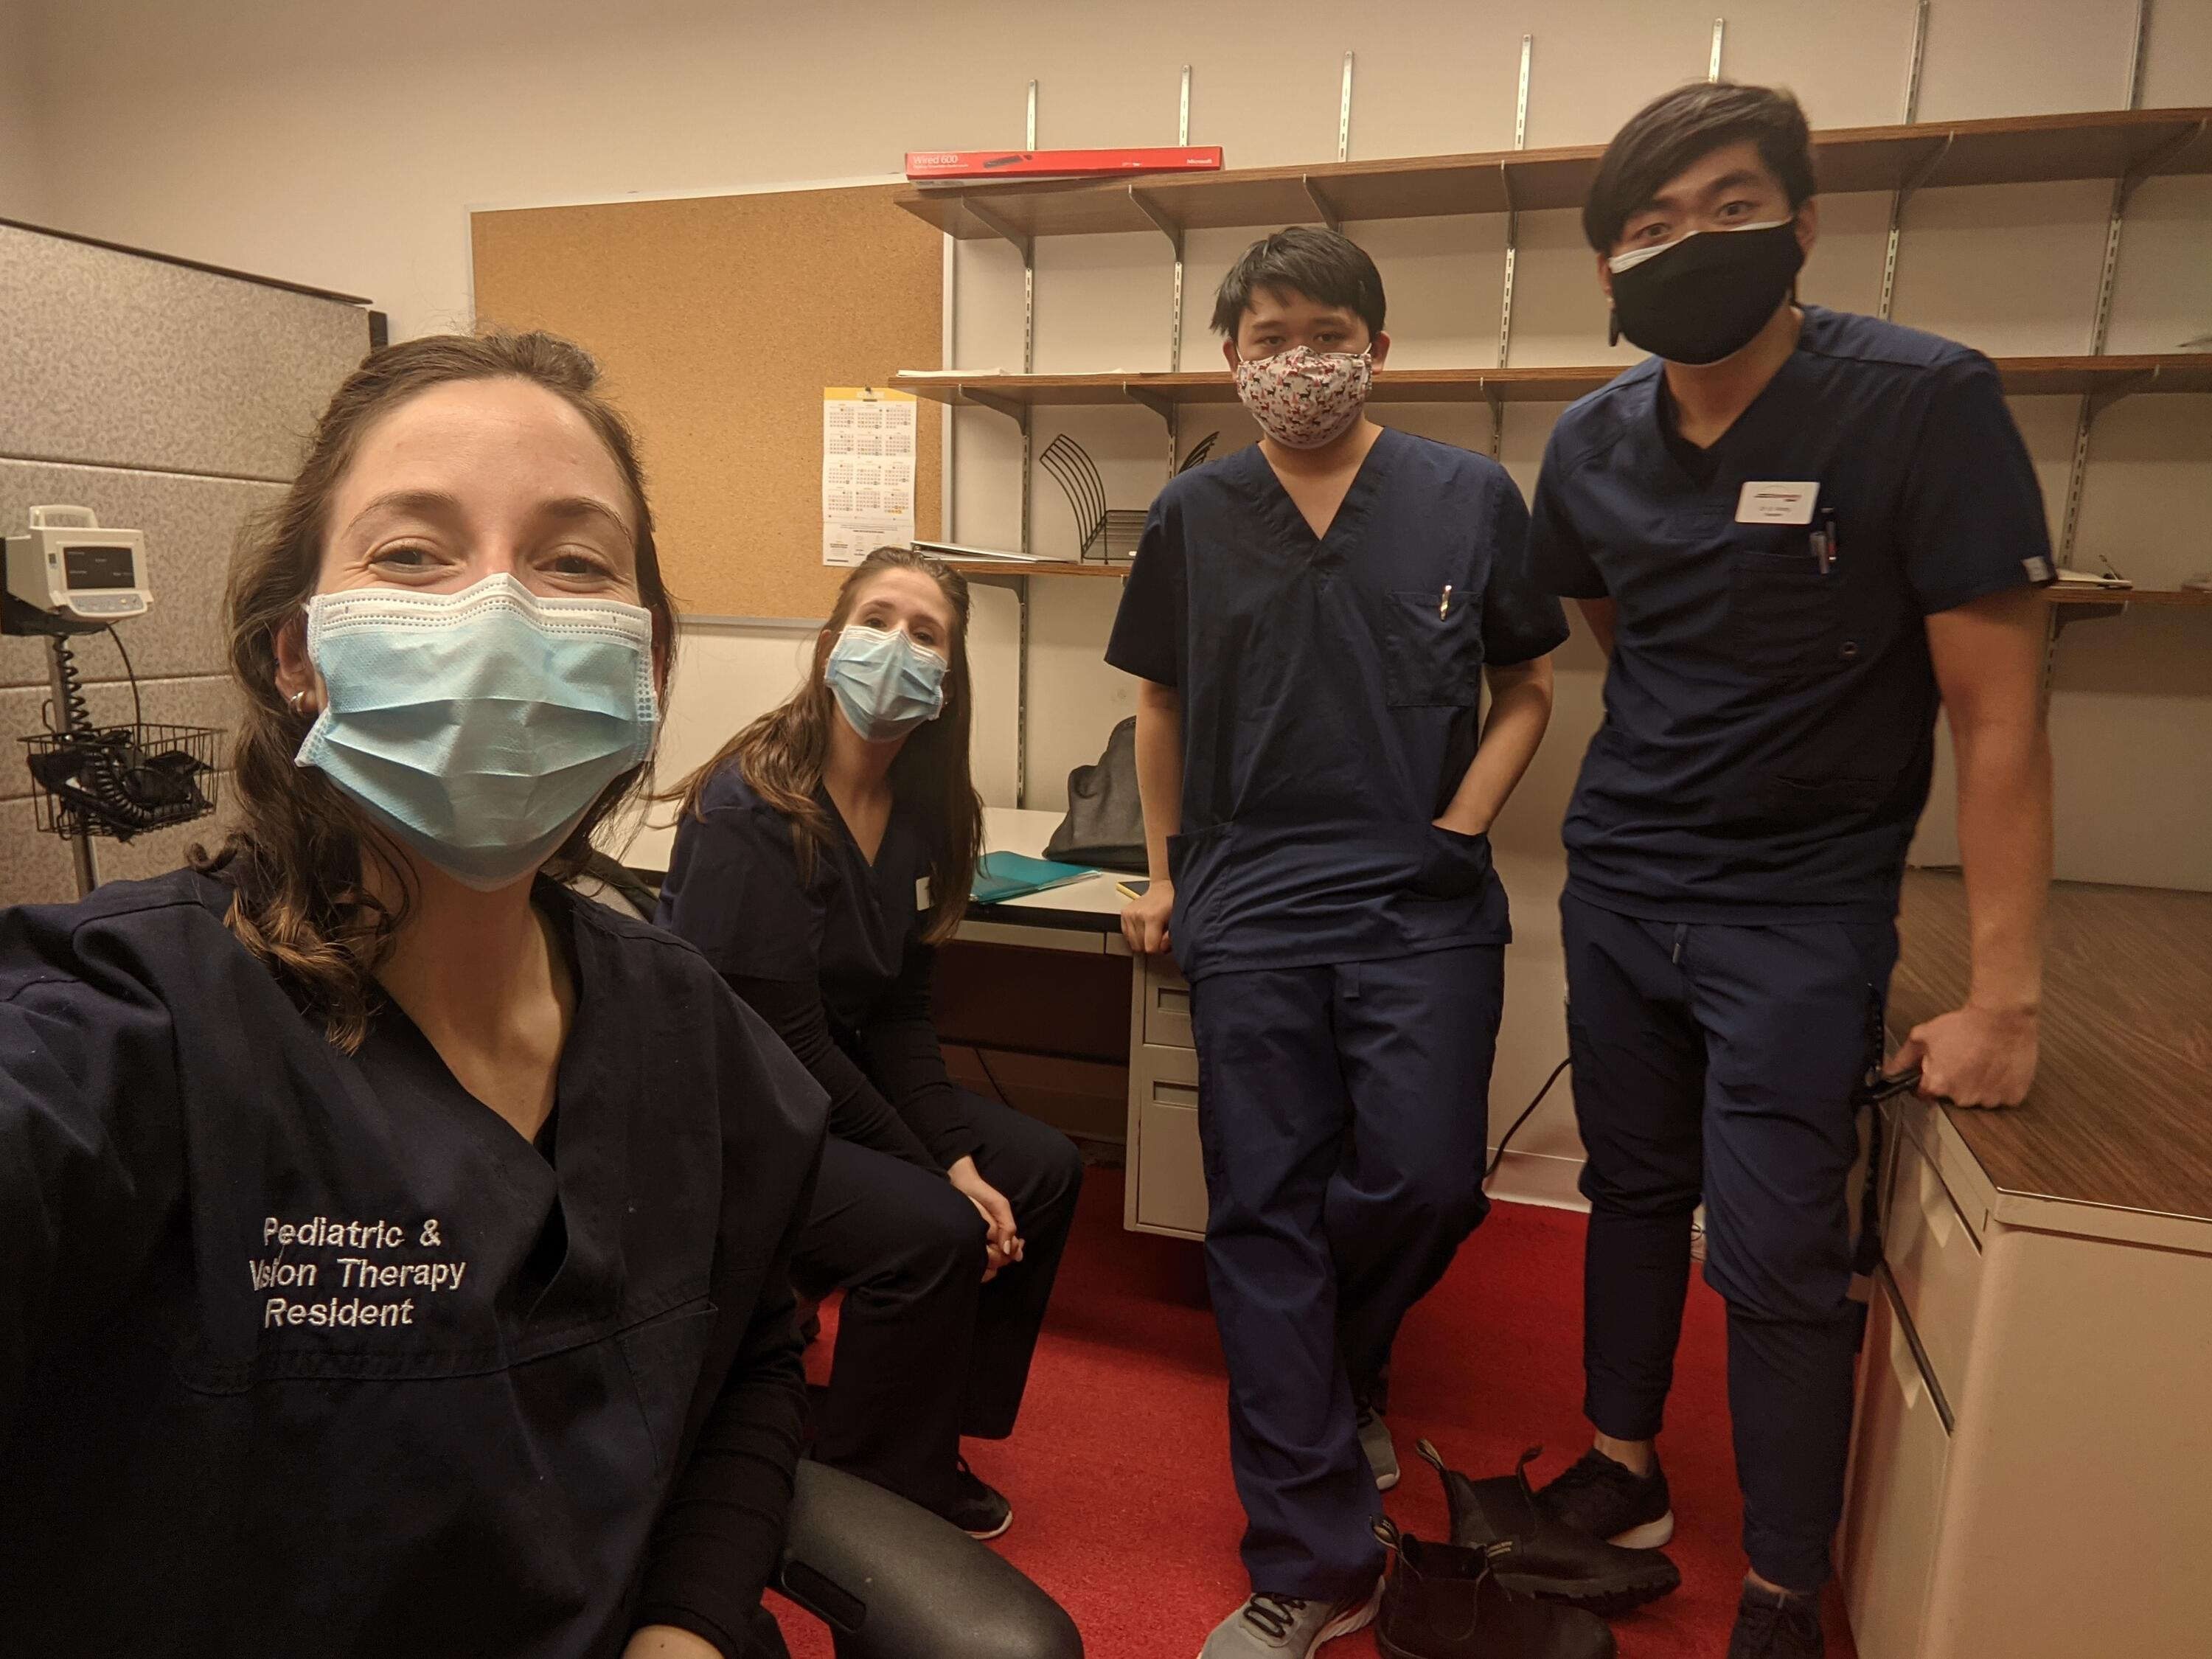 Four optometrists in an exam room - left to right: Dr. Zoe Stein, Dr. Rachel Amaral, Dr. Chen and Dr. Wong